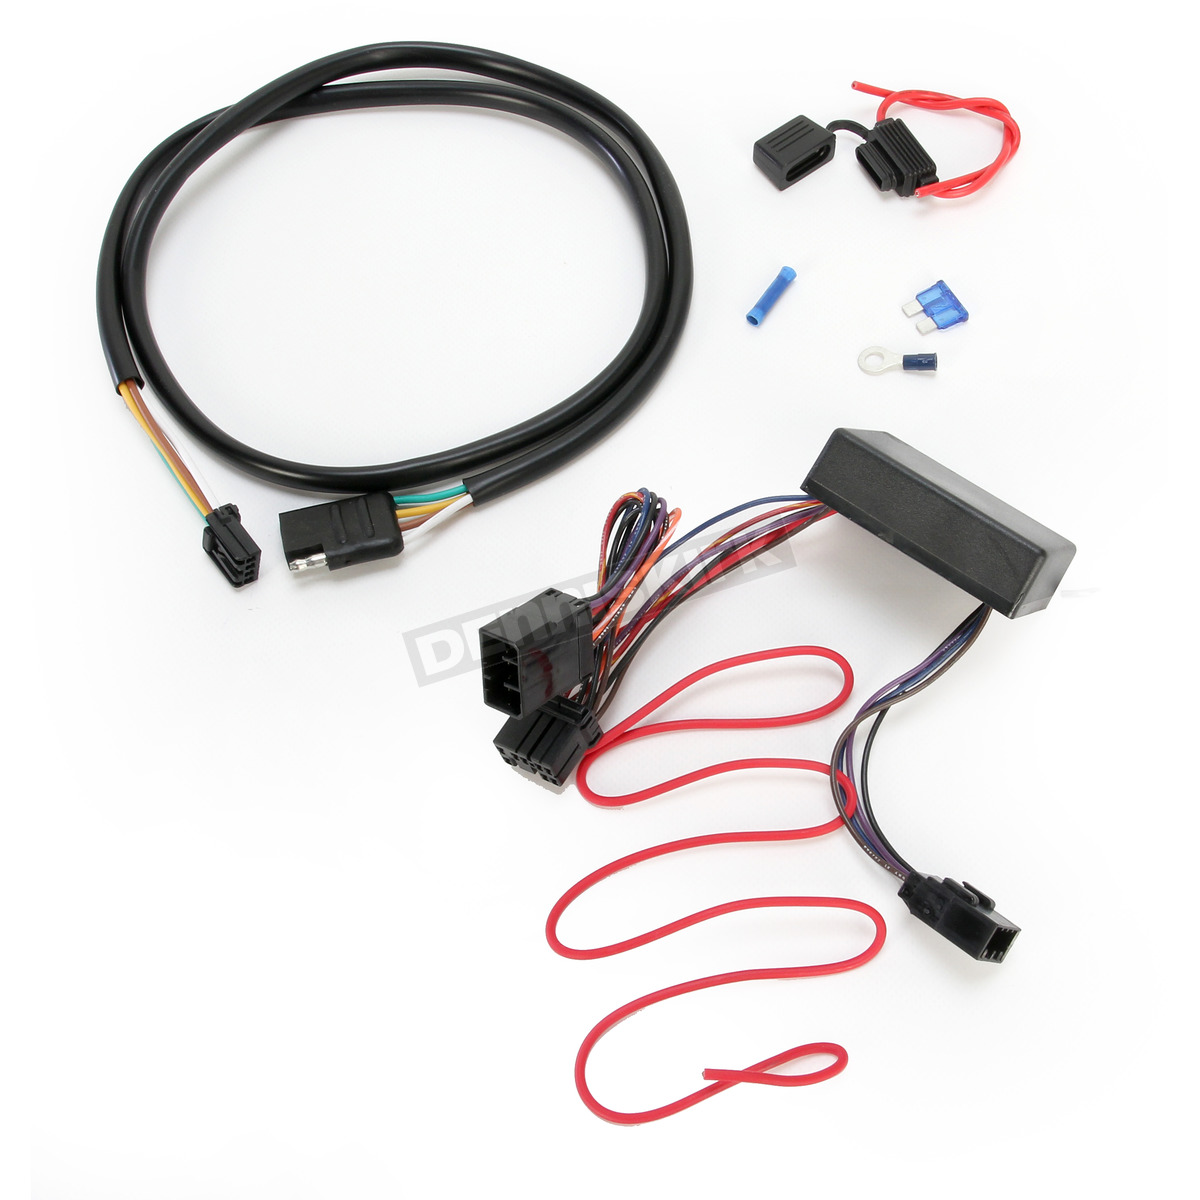 hight resolution of khrome werks plug and play trailer wiring connector kit w 4 wire harness